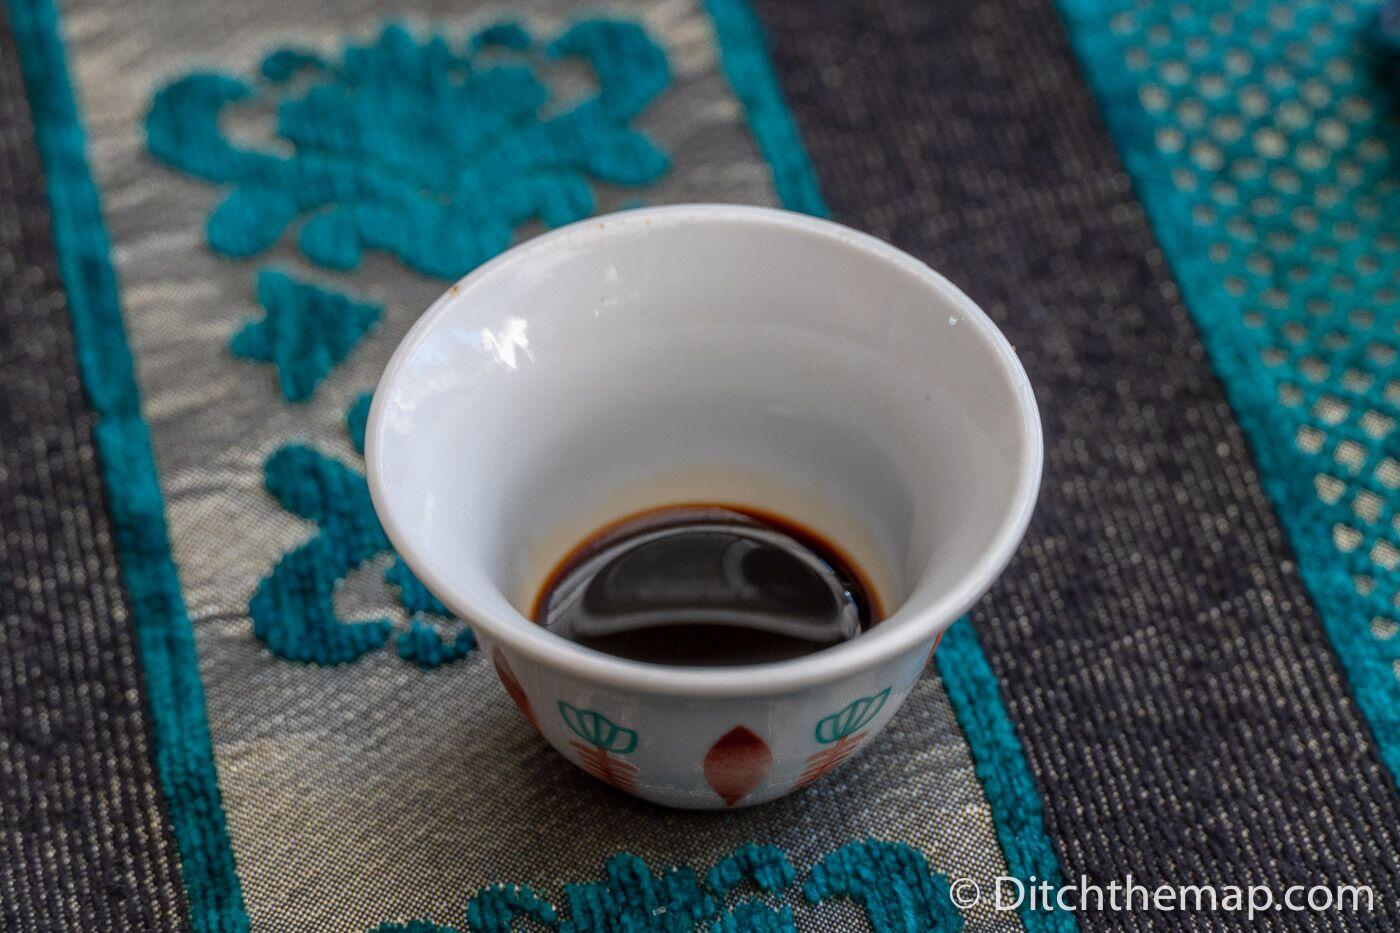 Specialty Mirra coffee is served as a single sip inside a tiny cup